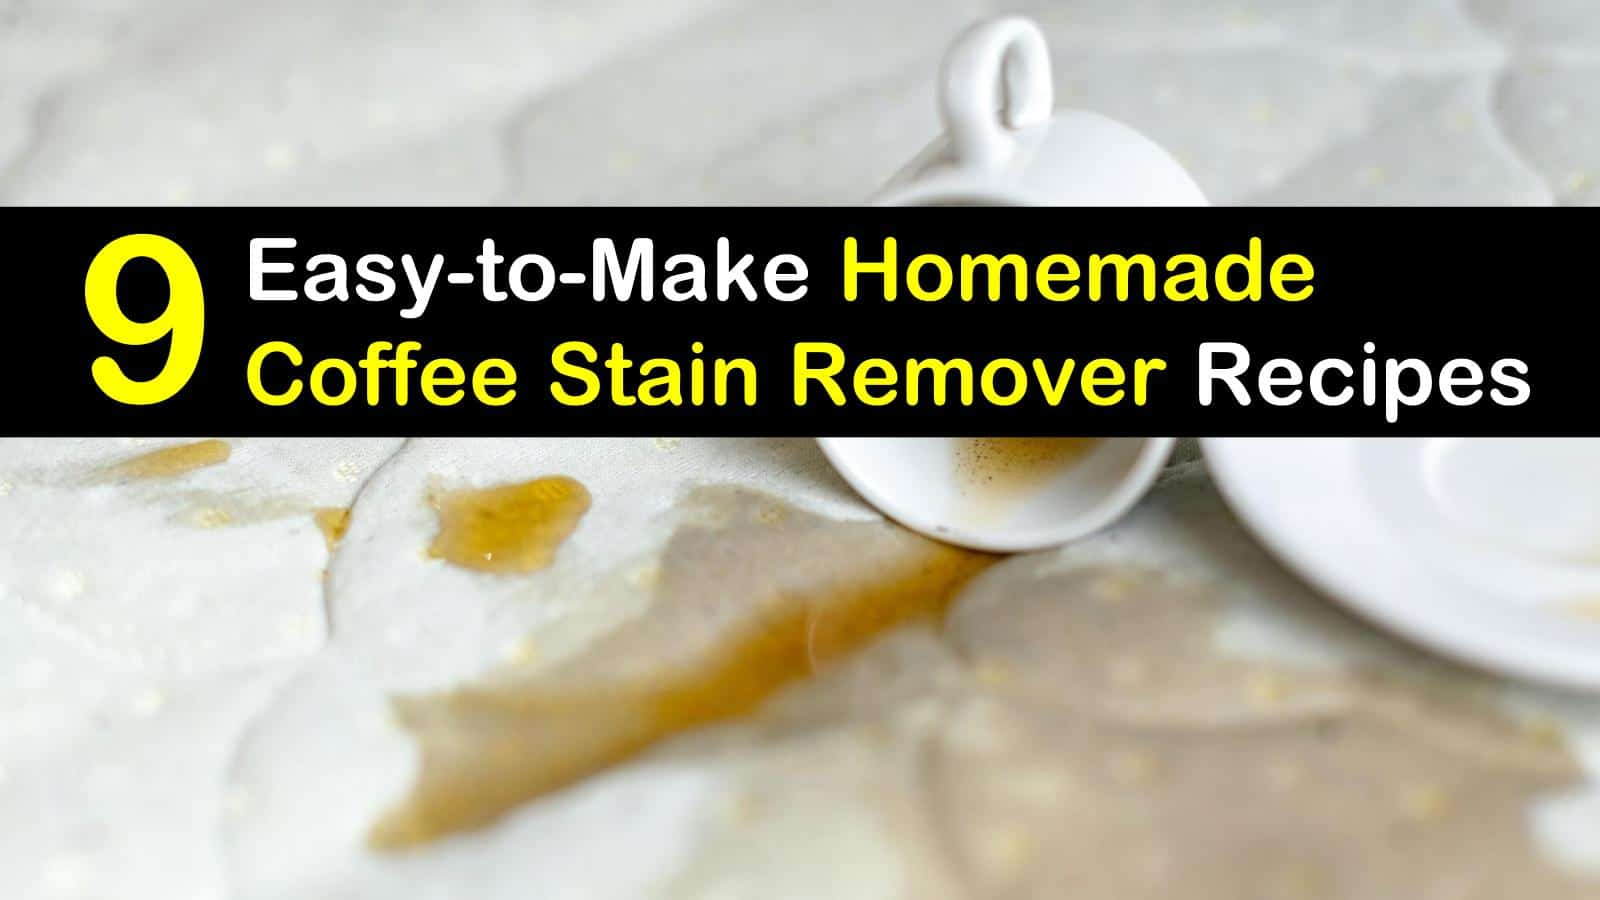 homemade coffee stain remover titleimg1